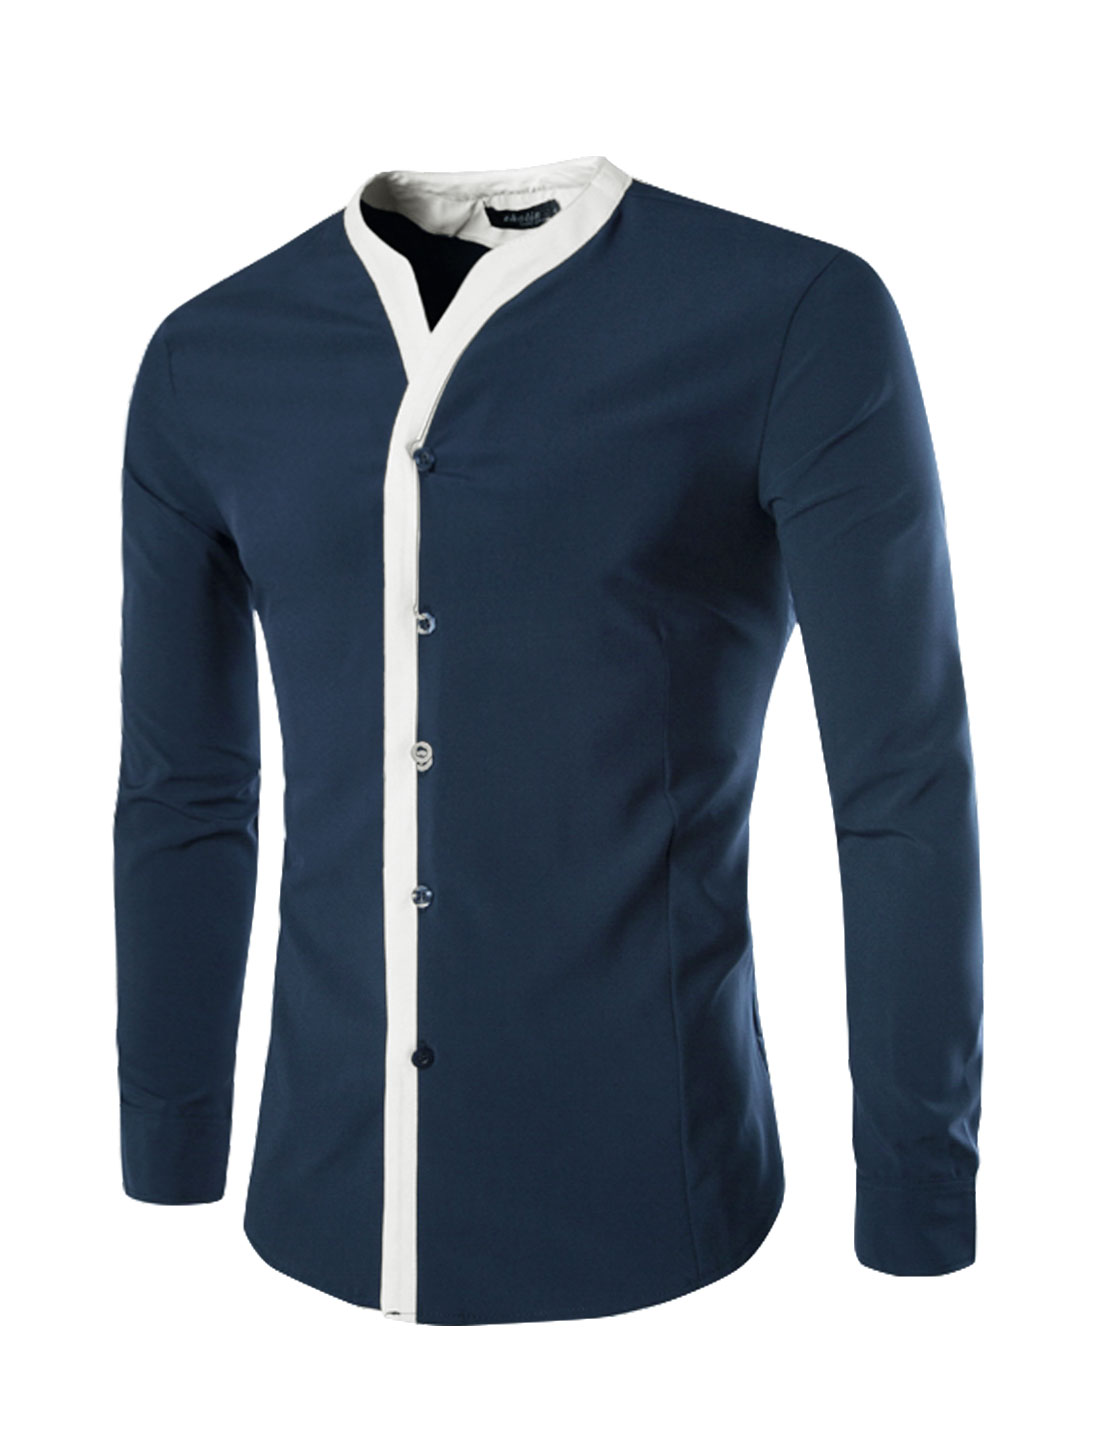 Men Long Sleeves V Neck Contrast Color Button Closure Shirt Blue M